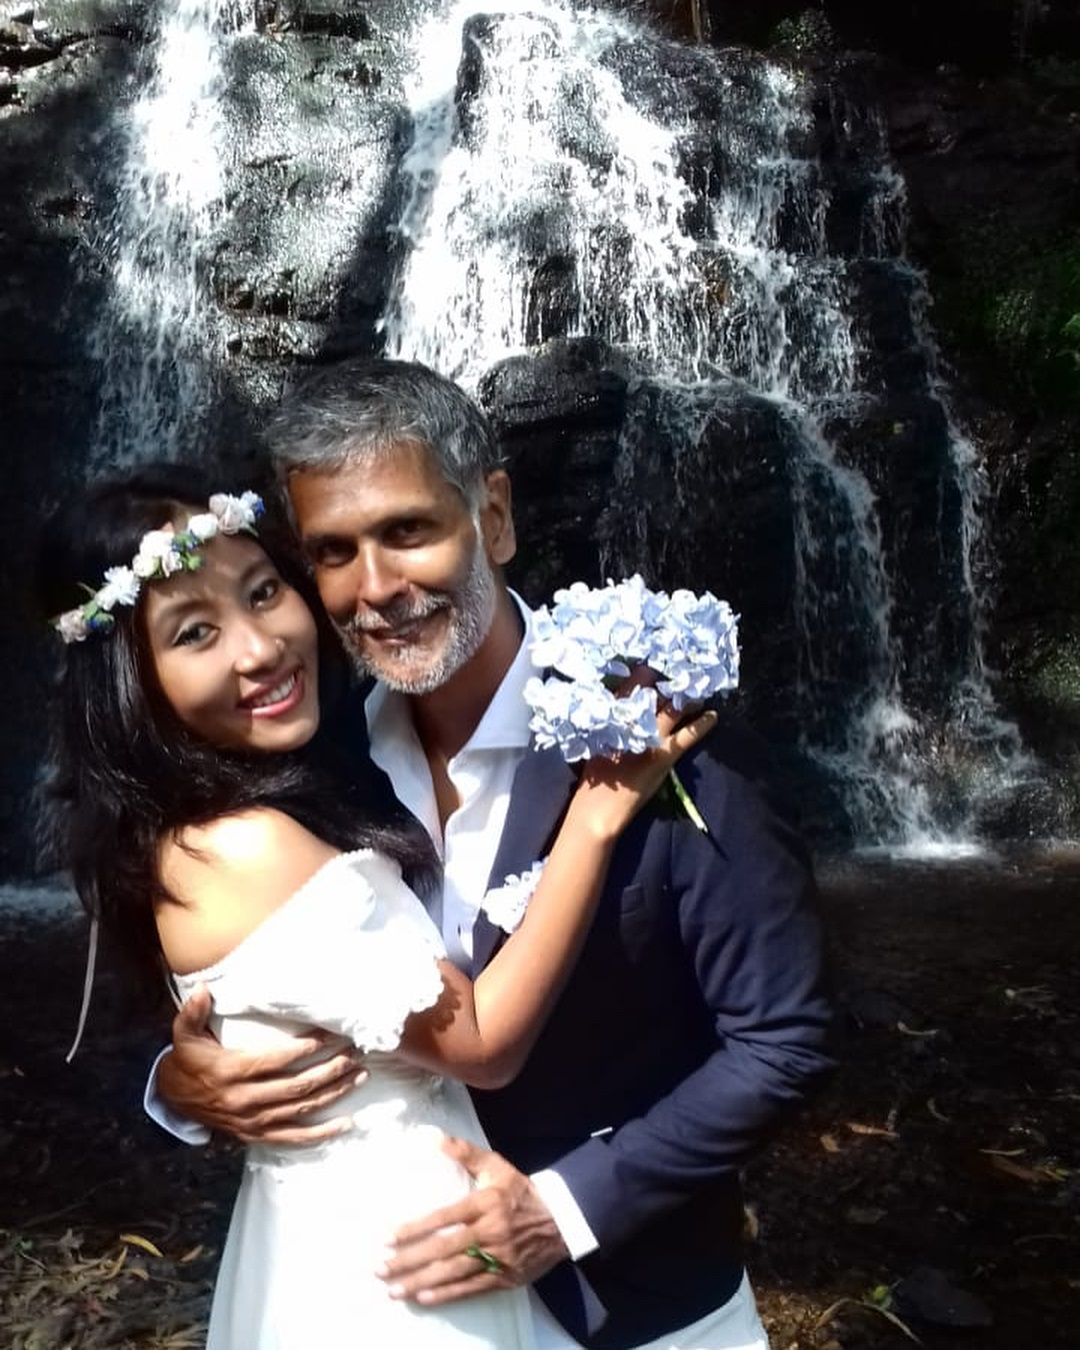 Milind Soman and Ankita Konwar